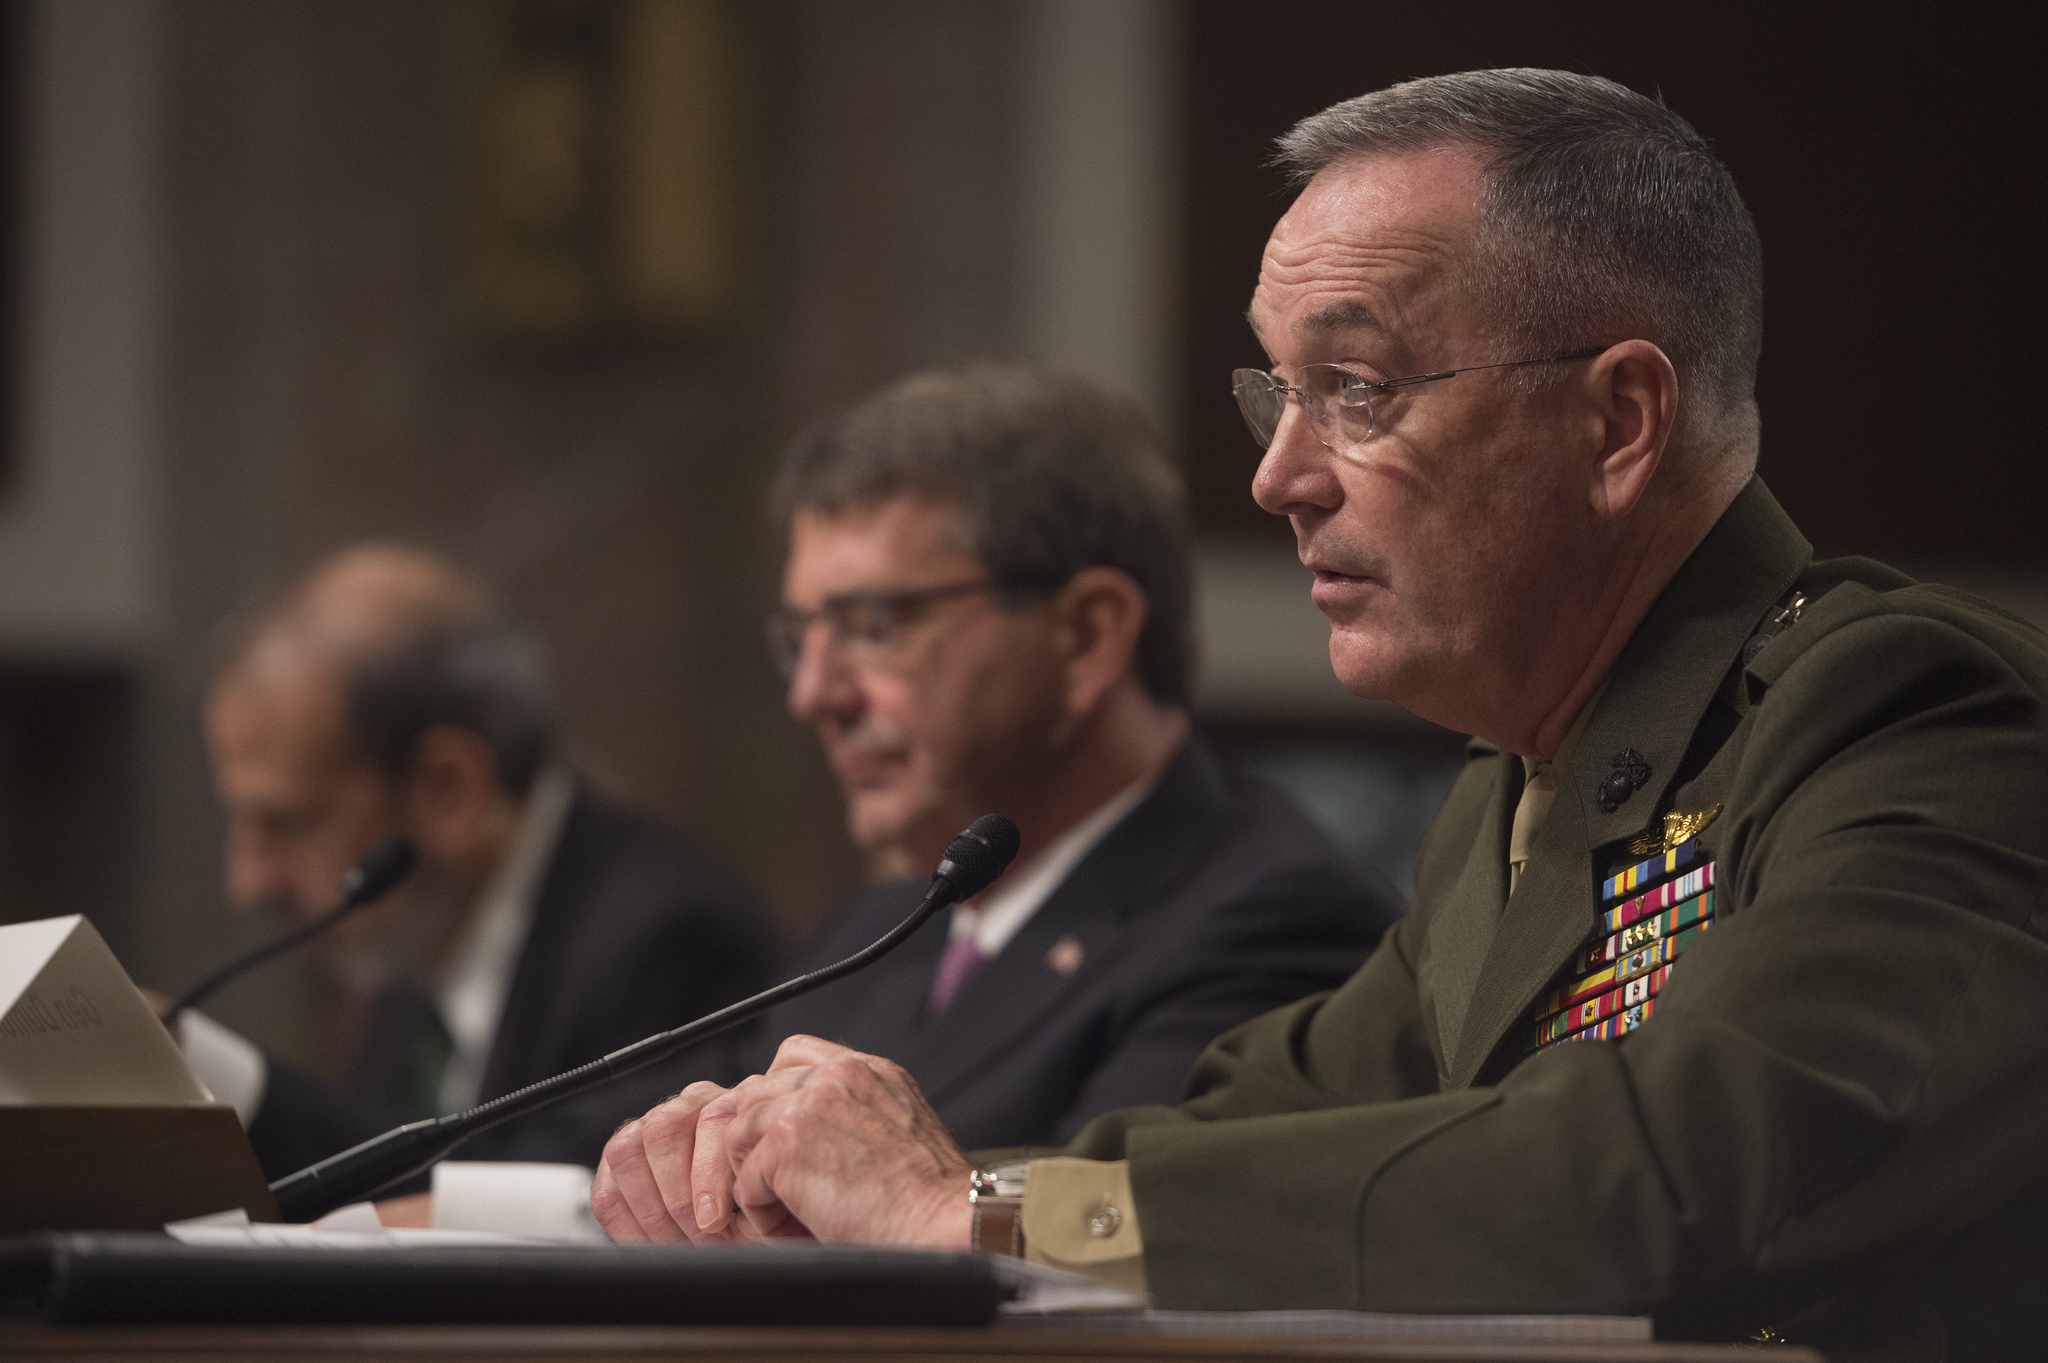 Gen. Joseph Dunford testifying before Congress on March 17, 2016. DoD Photo